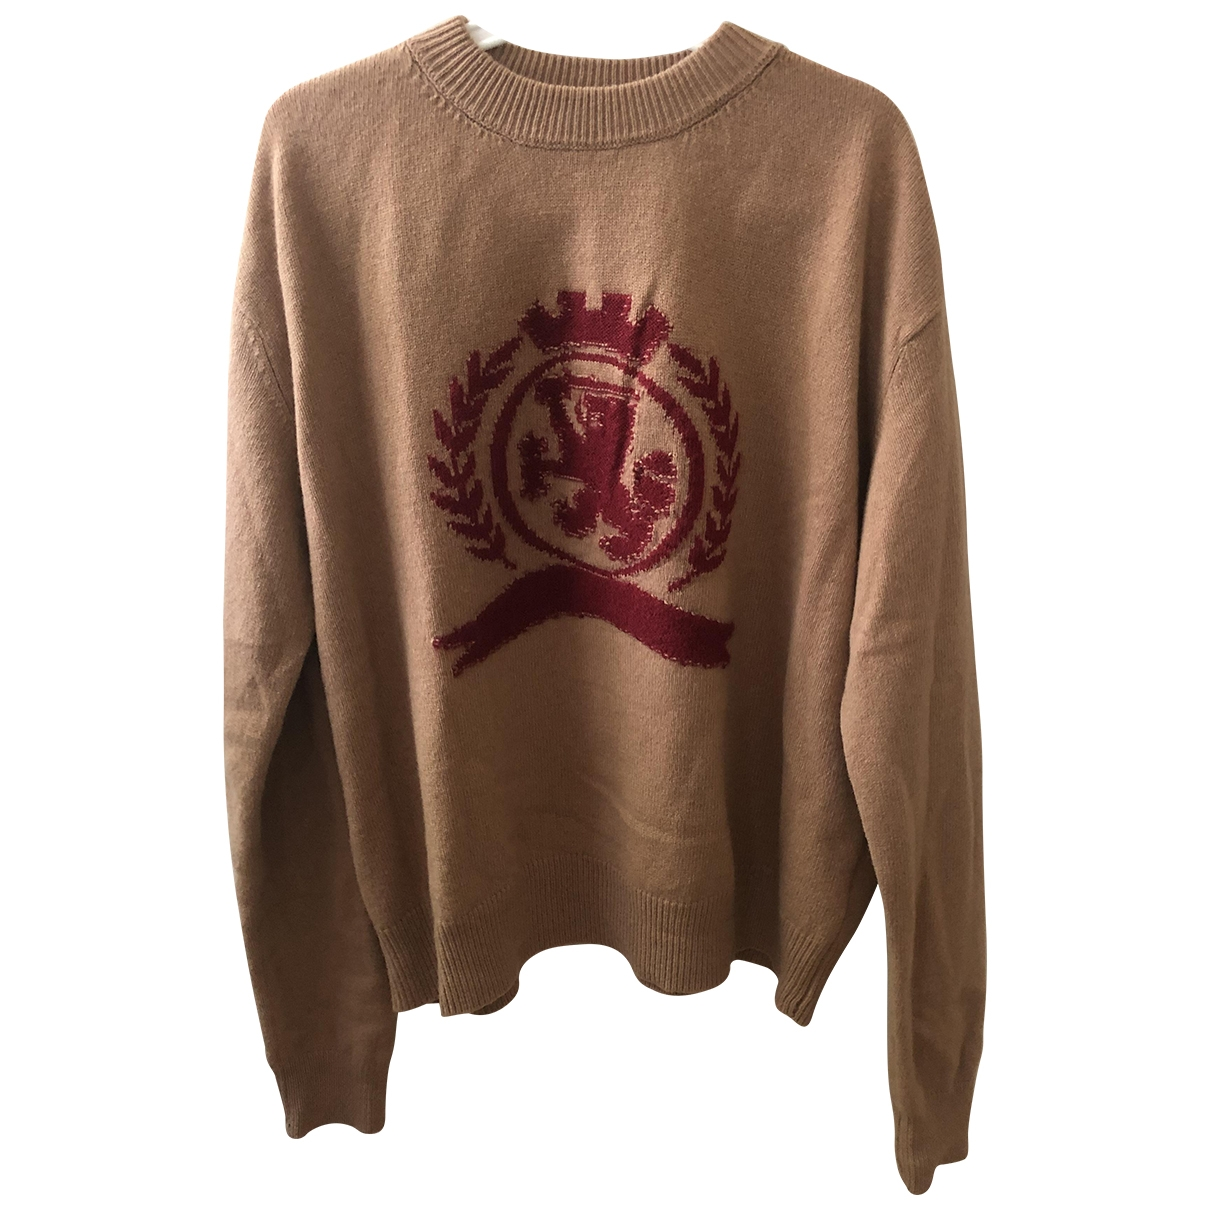 Hilfiger Collection \N Camel Wool Knitwear for Women S International